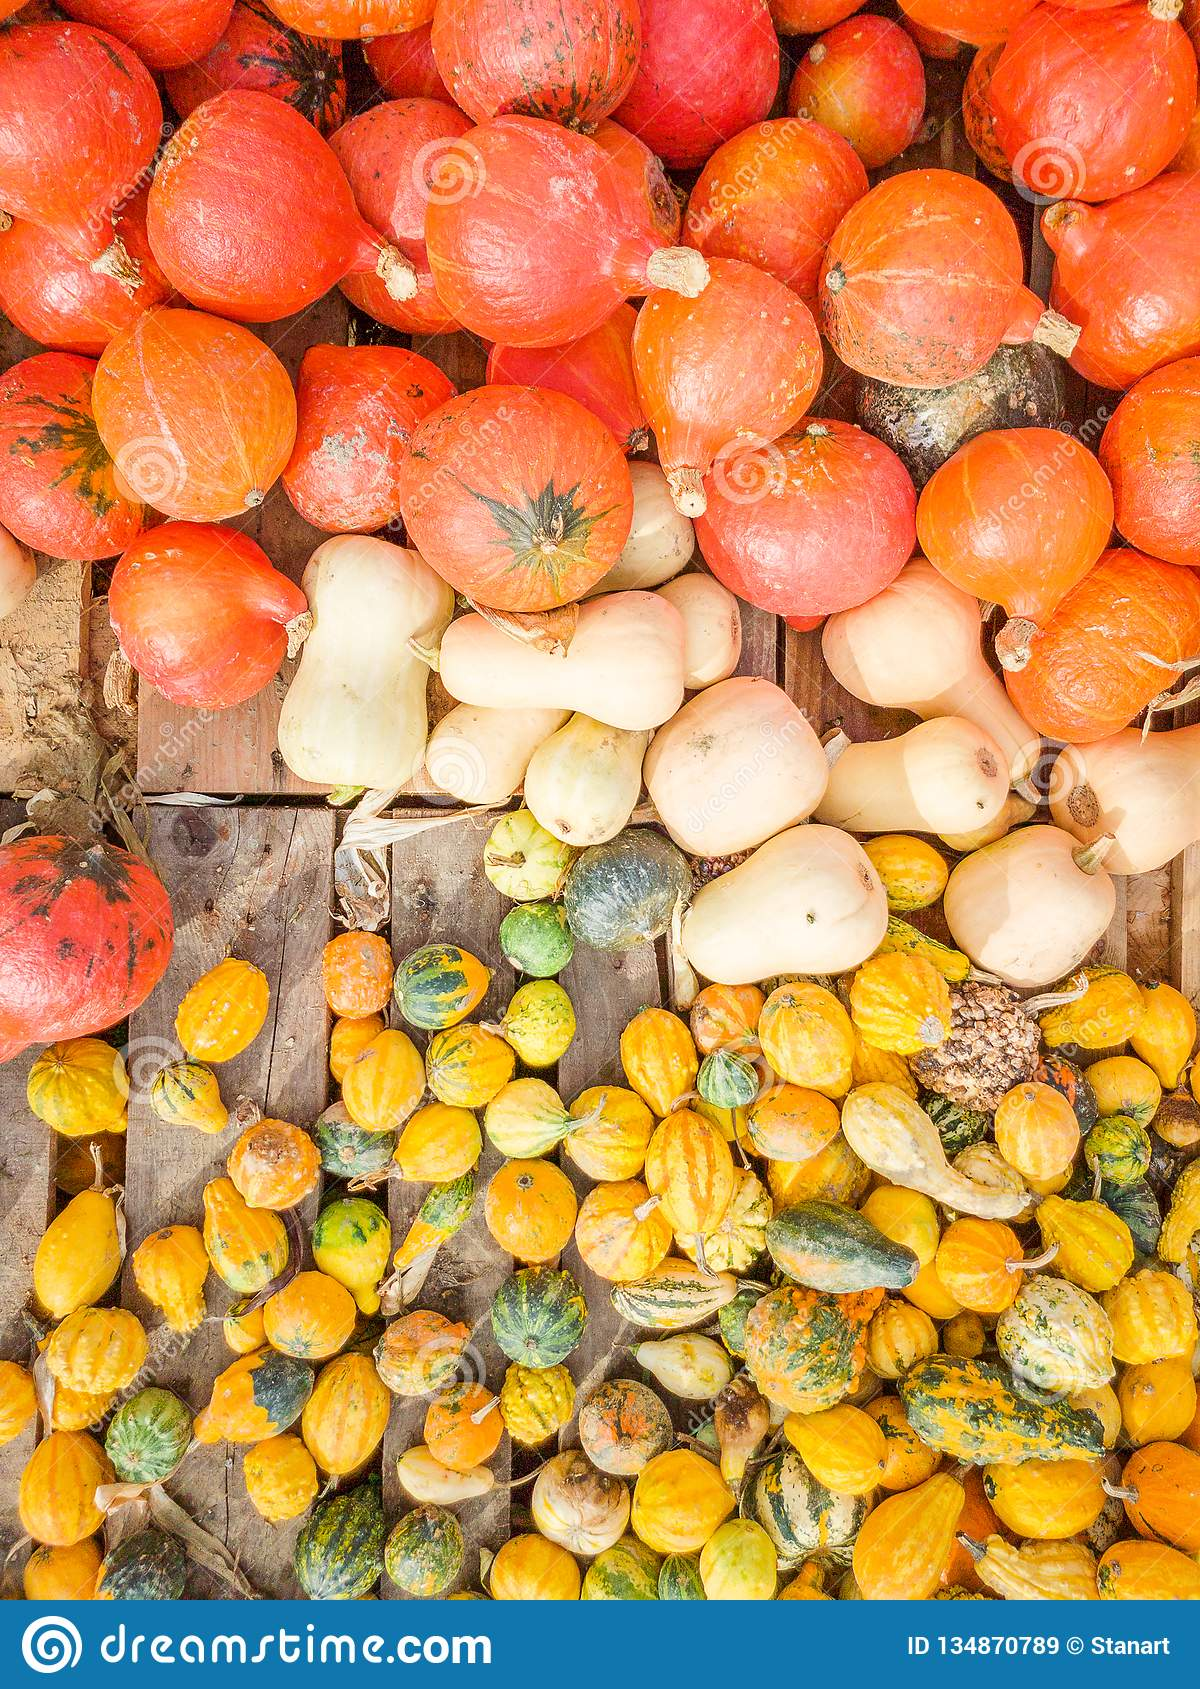 Many red pumpkins or winter squash on farmers market